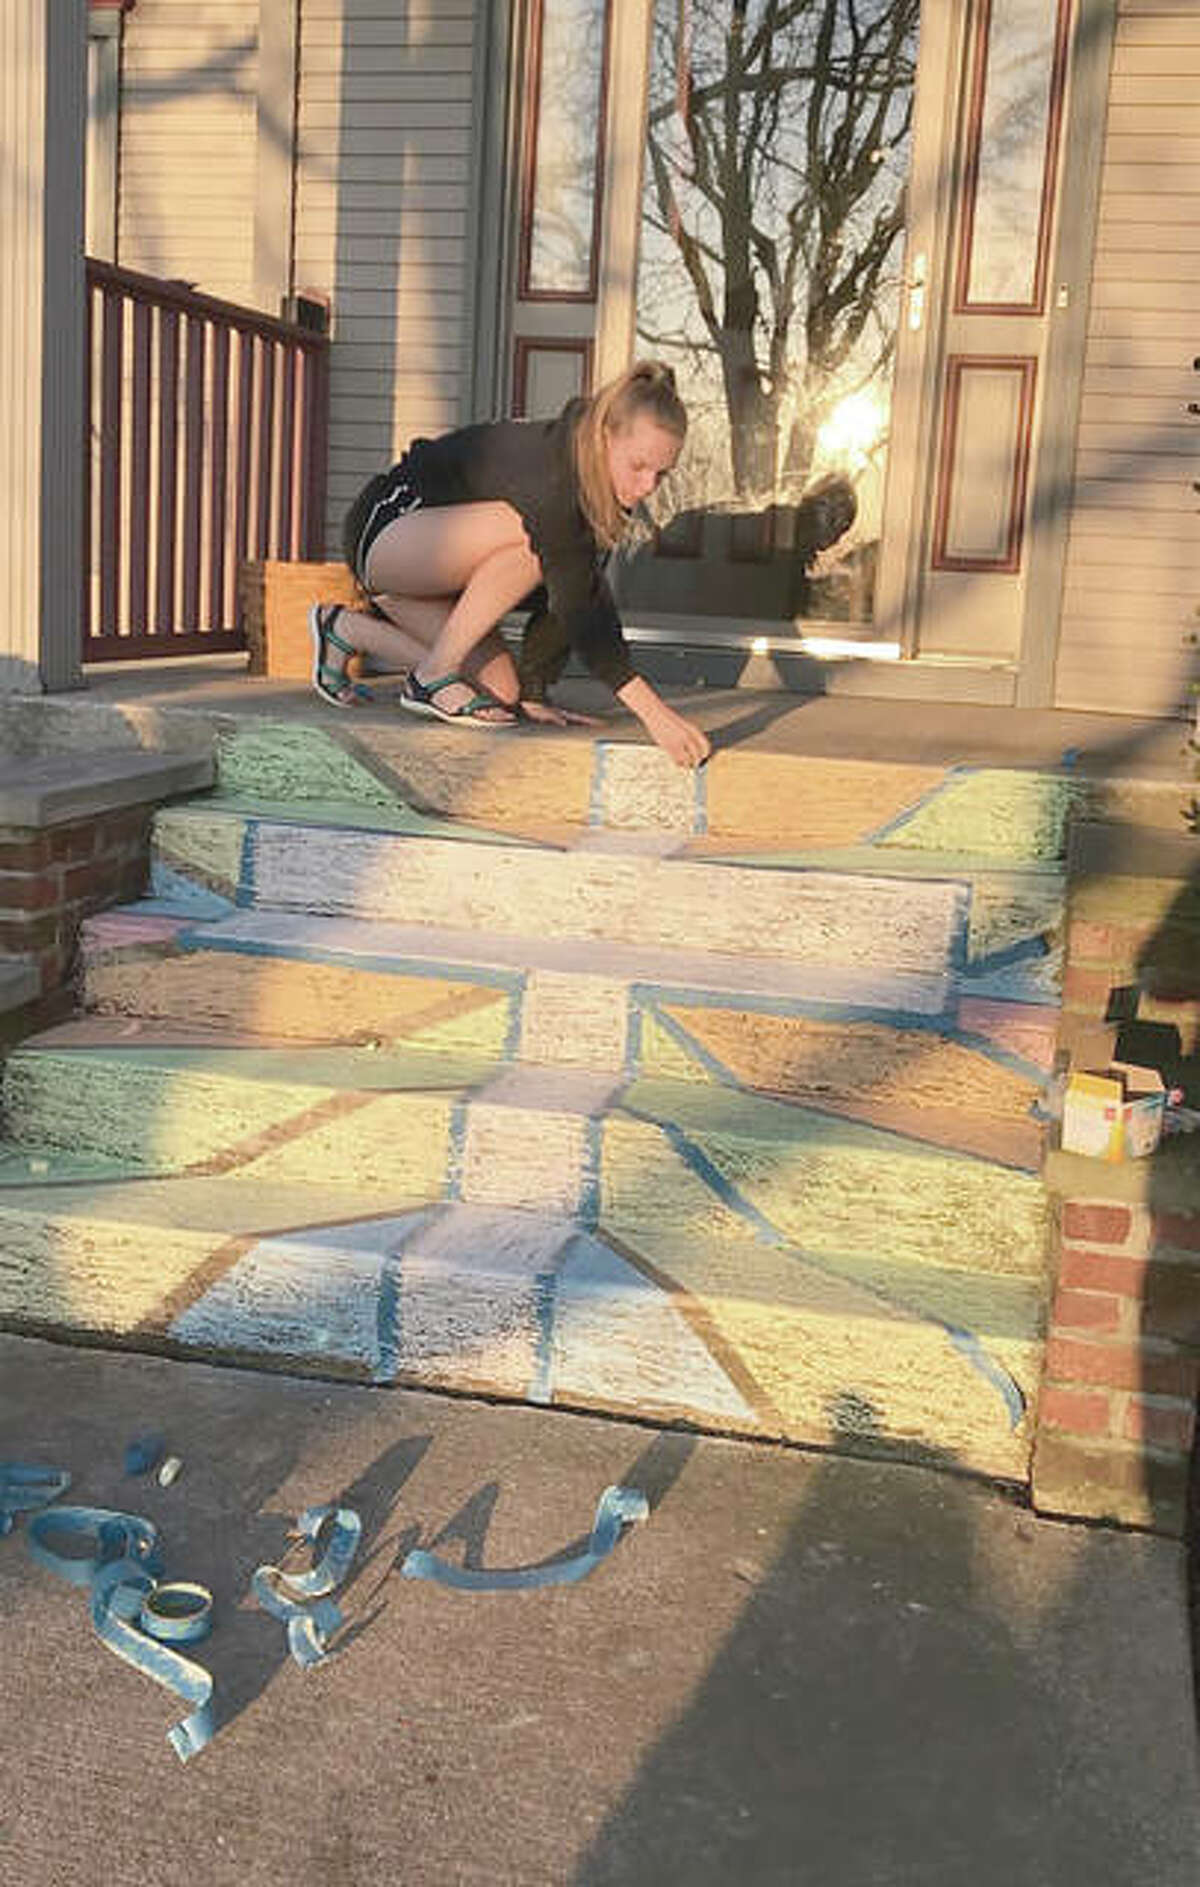 Miley Crow of New Berlin uses chalk to decorate a set of steps with a reminder of Holy Week. Today marks the day many religions commemorate the Last Supper, the final meal Jesus Christ had with his disciples before his arrest and death by crucifixion. Sunday is Easter, which celebrates Christ's resurrection.